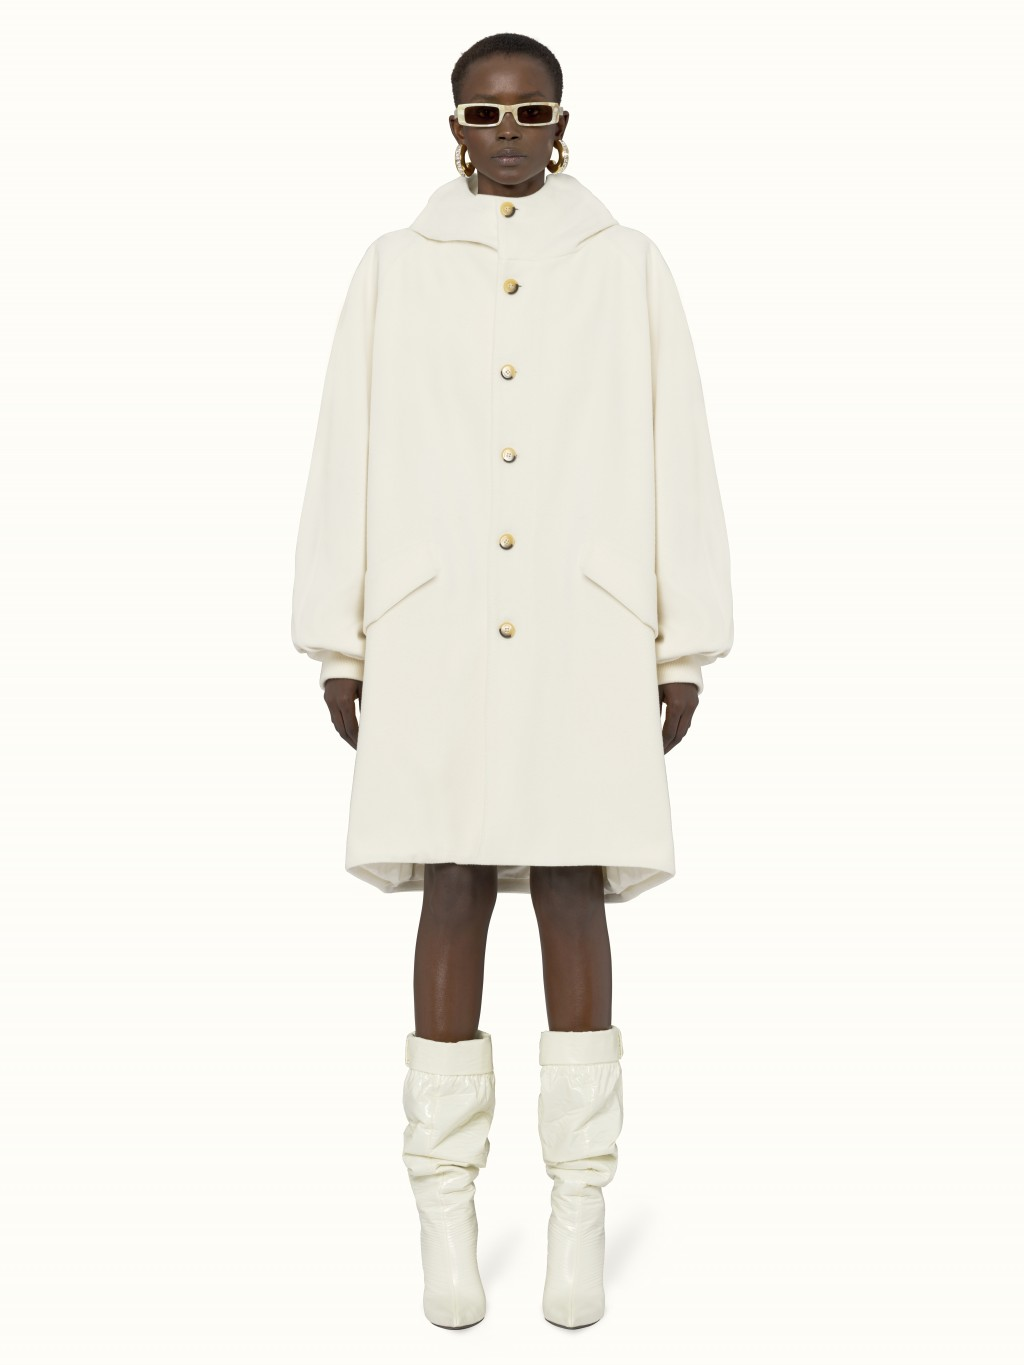 This photo shows the Fenty Parka Oversize Cocoon coat in cream. From tablescapes to apparel, the gift possibilities in white are endless for the holid...